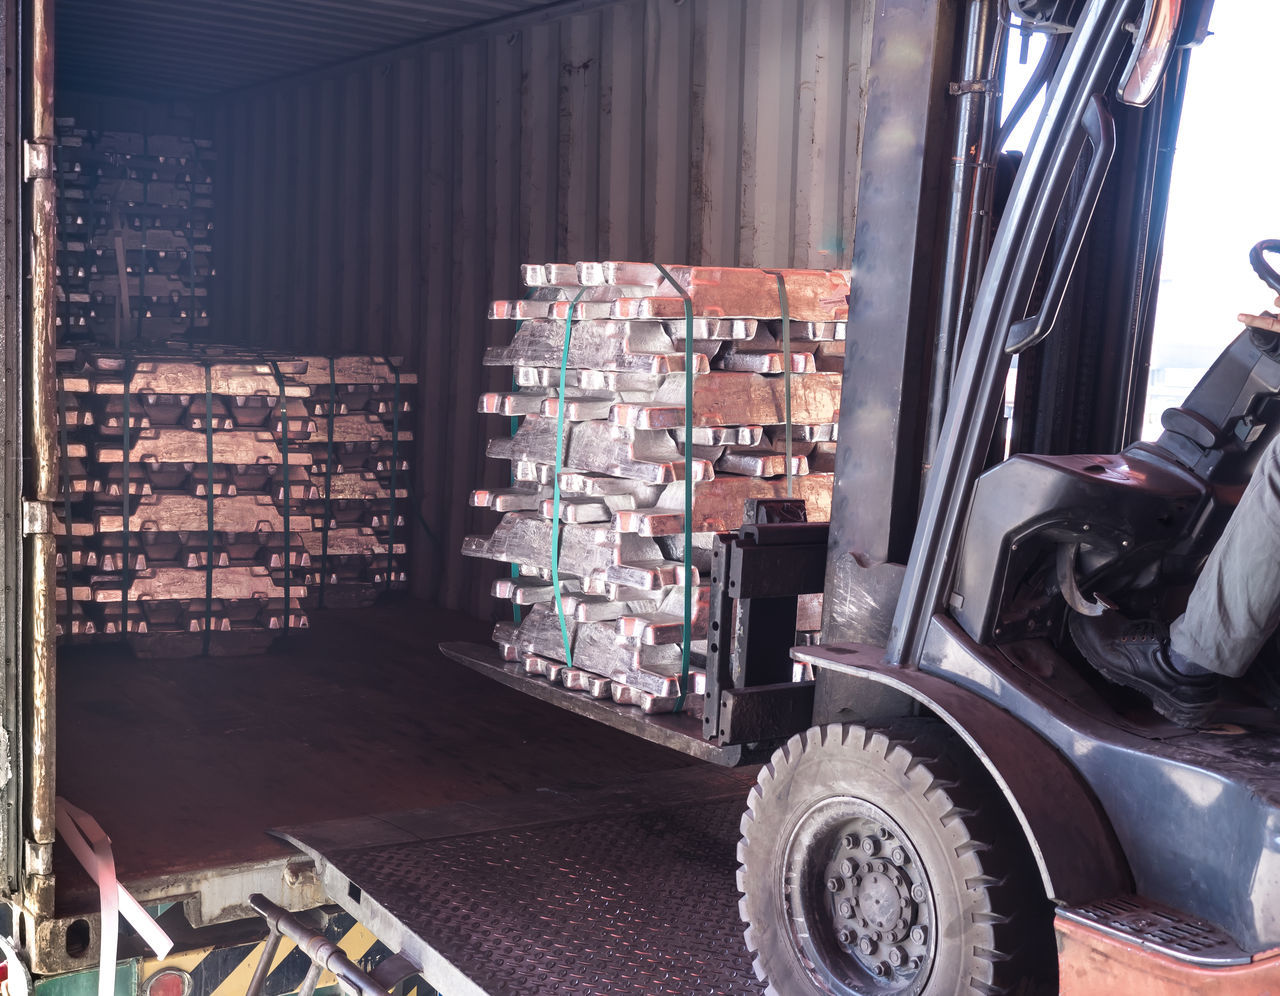 Unstuffing aluminium ingot from container Zinc Stack Business Finance And Industry Large Group Of Objects Abundance Warehouse Day Transportation Industry No People Indoors  Metal Industry unstuff Container Metal Reflection Silver  Stock Storage Handling Forklift Crane closeup Blocks Aluminium Ingots Factory